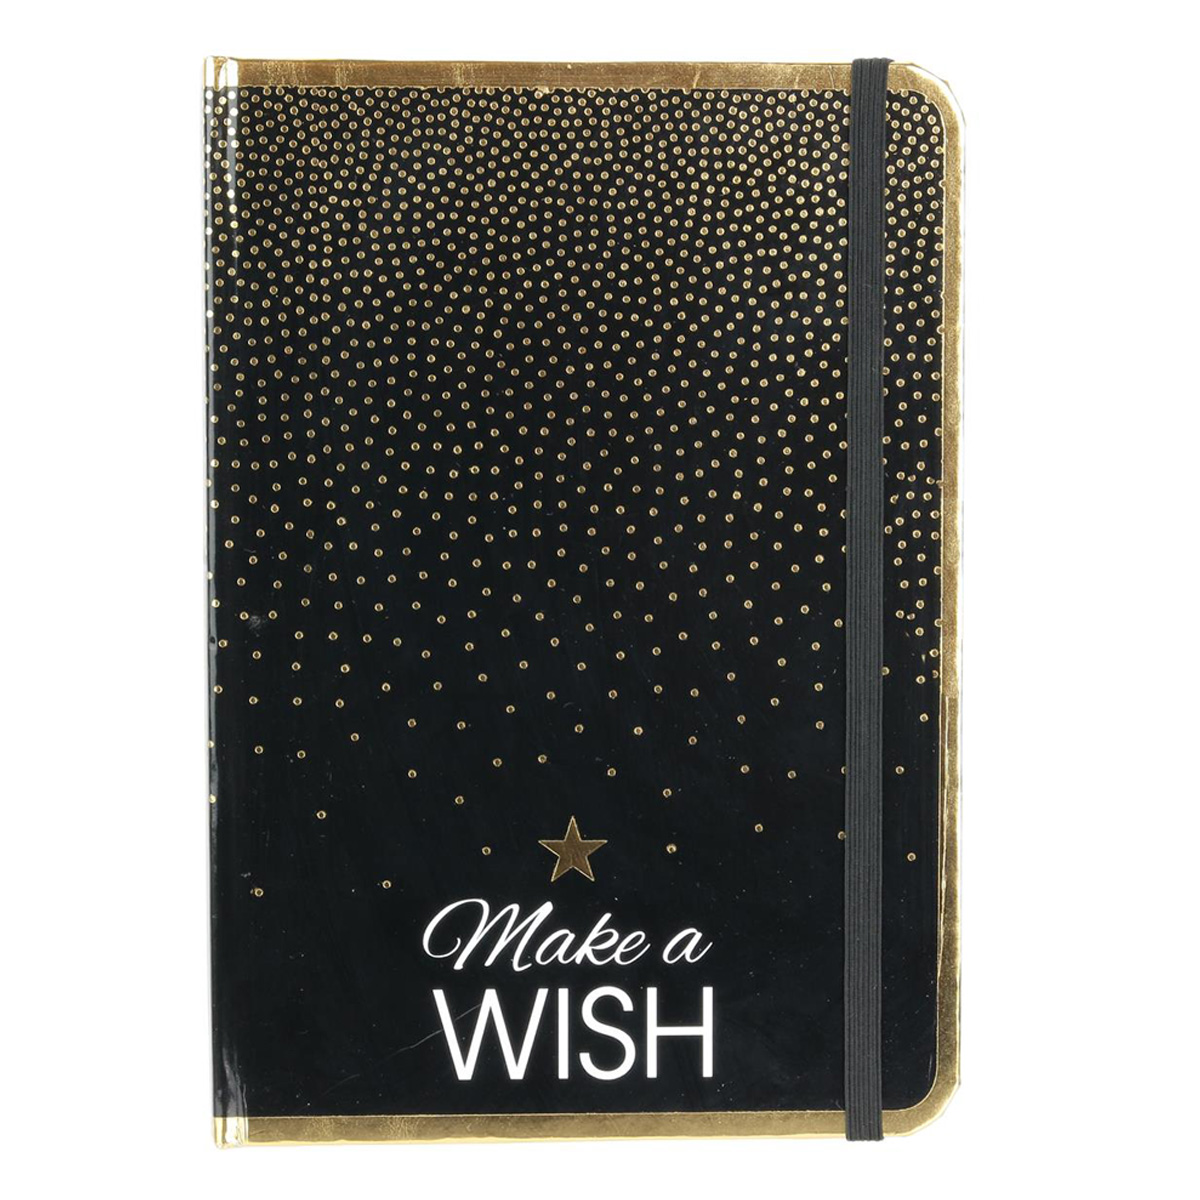 Carnet A5 \'Messages\' noir doré (Make a wish) - 21x148 cm - [Q3851]